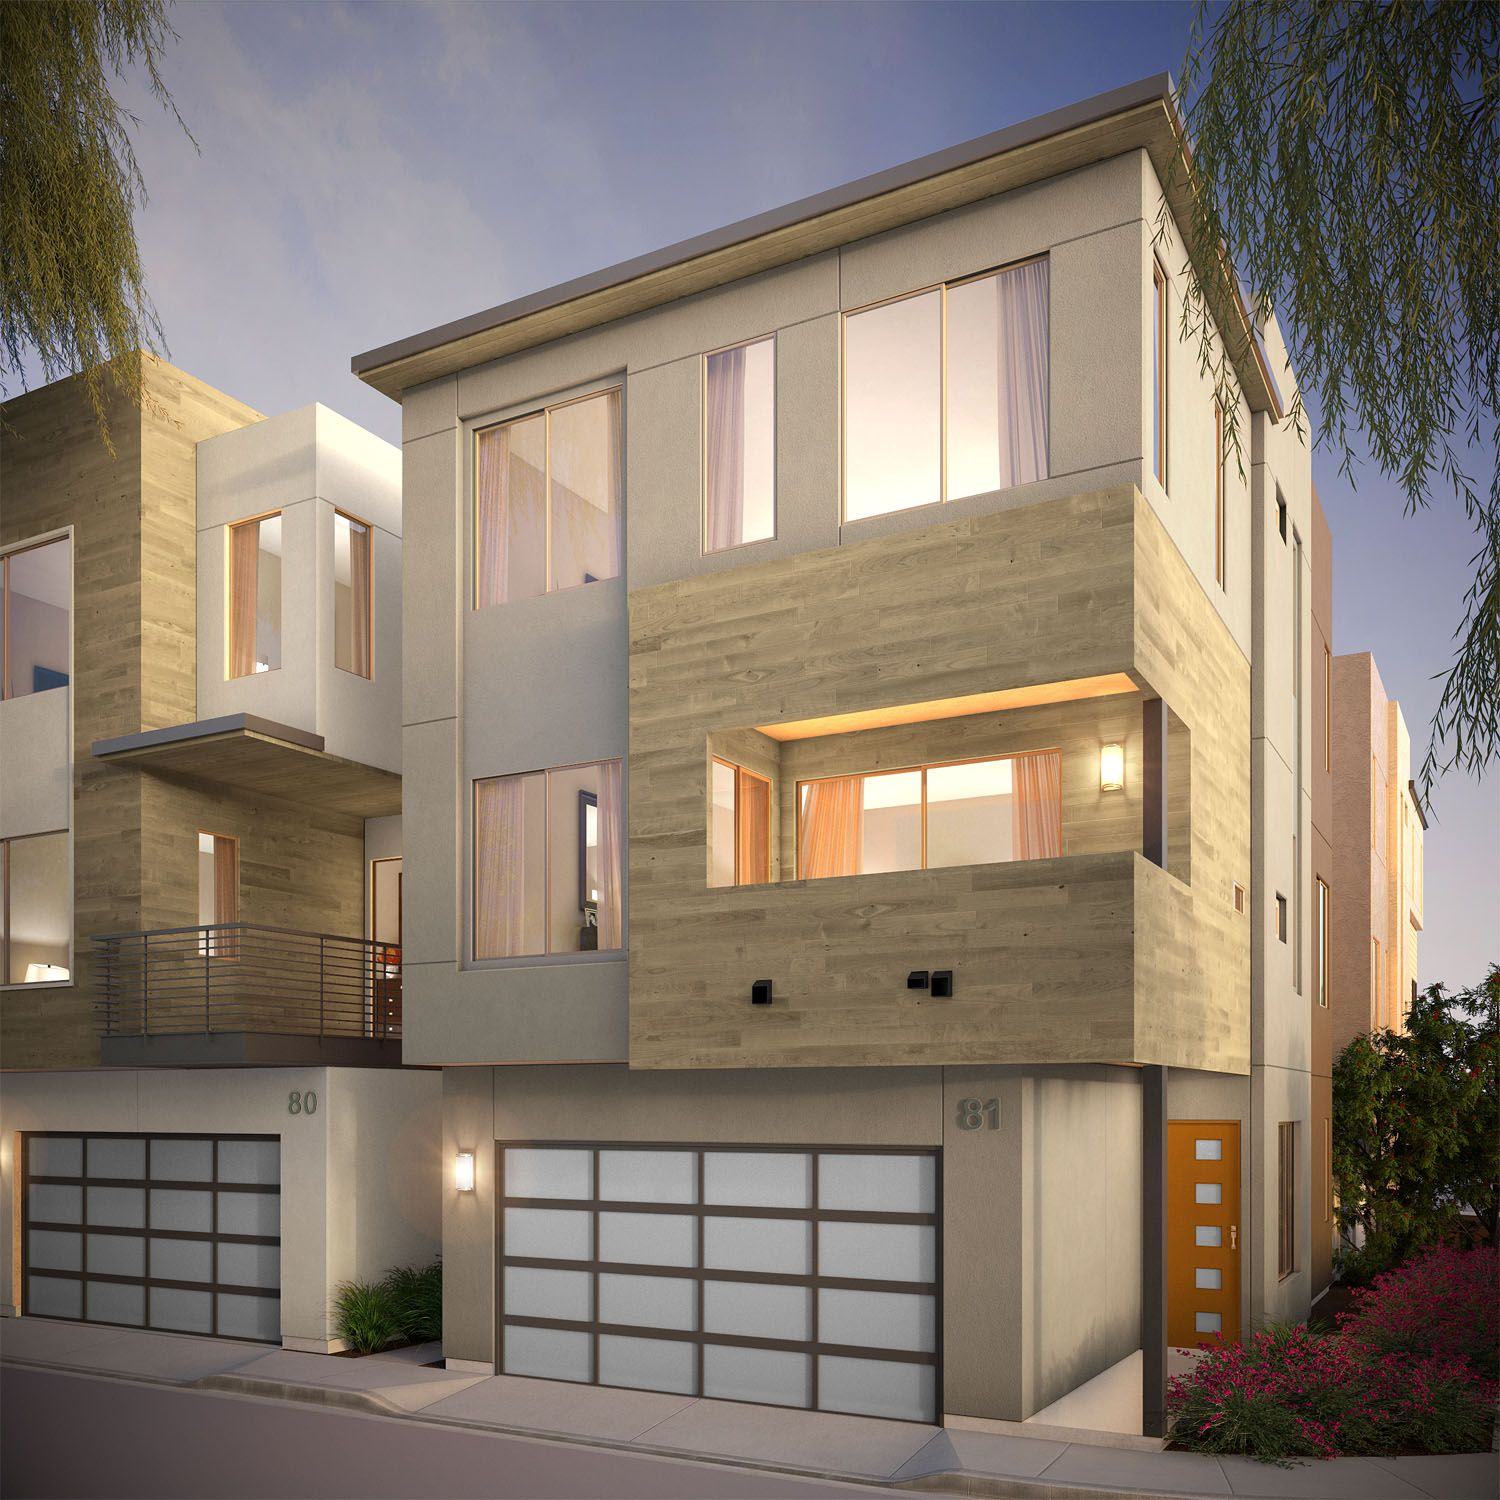 Single Family for Sale at Ebb Tide By Mbk Homes - Residence 3 Balboa 1560 Placentia Ave Newport Beach, California 92663 United States